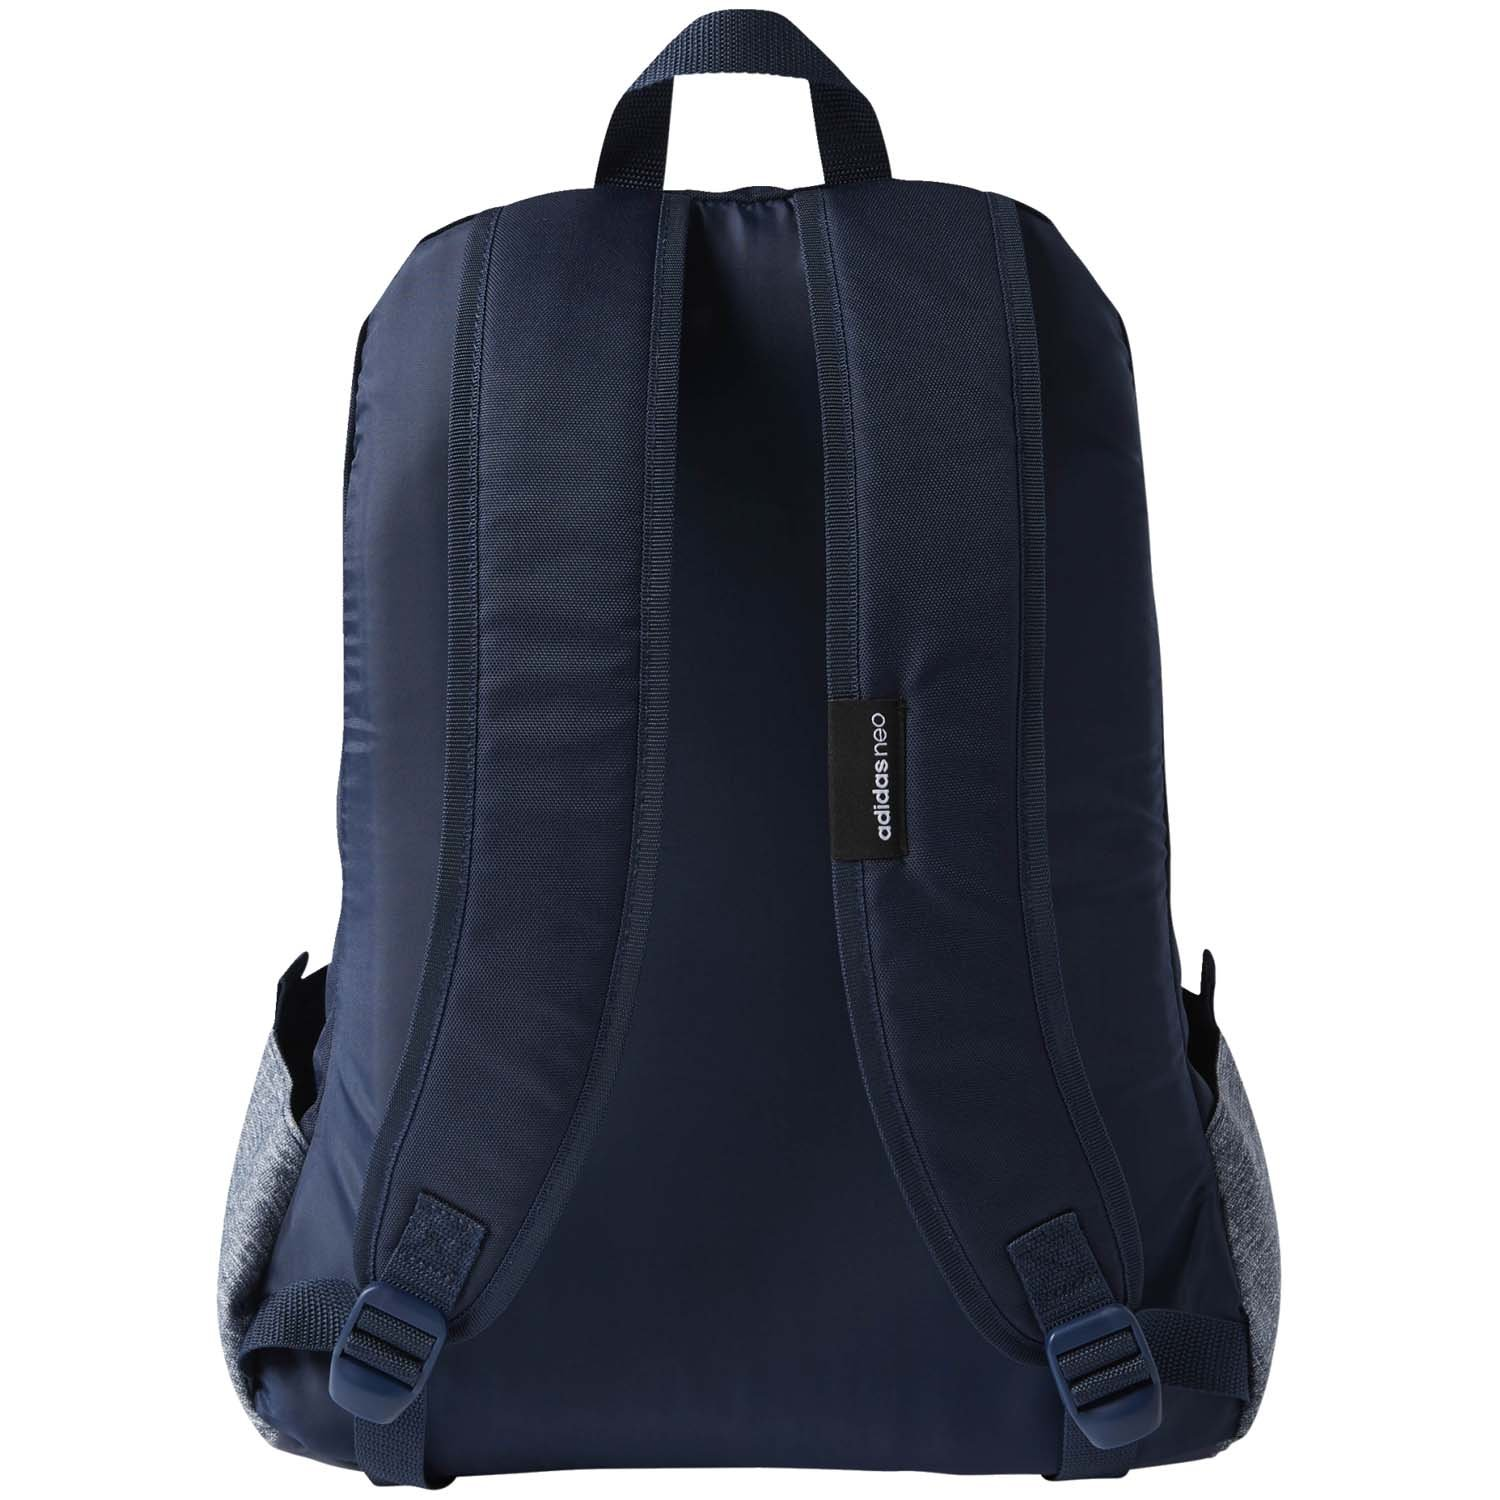 Adidas NEO Bags Training Neopark Backpack School CD9721  Amazon.ca  Luggage    Bags c21ee40af9372